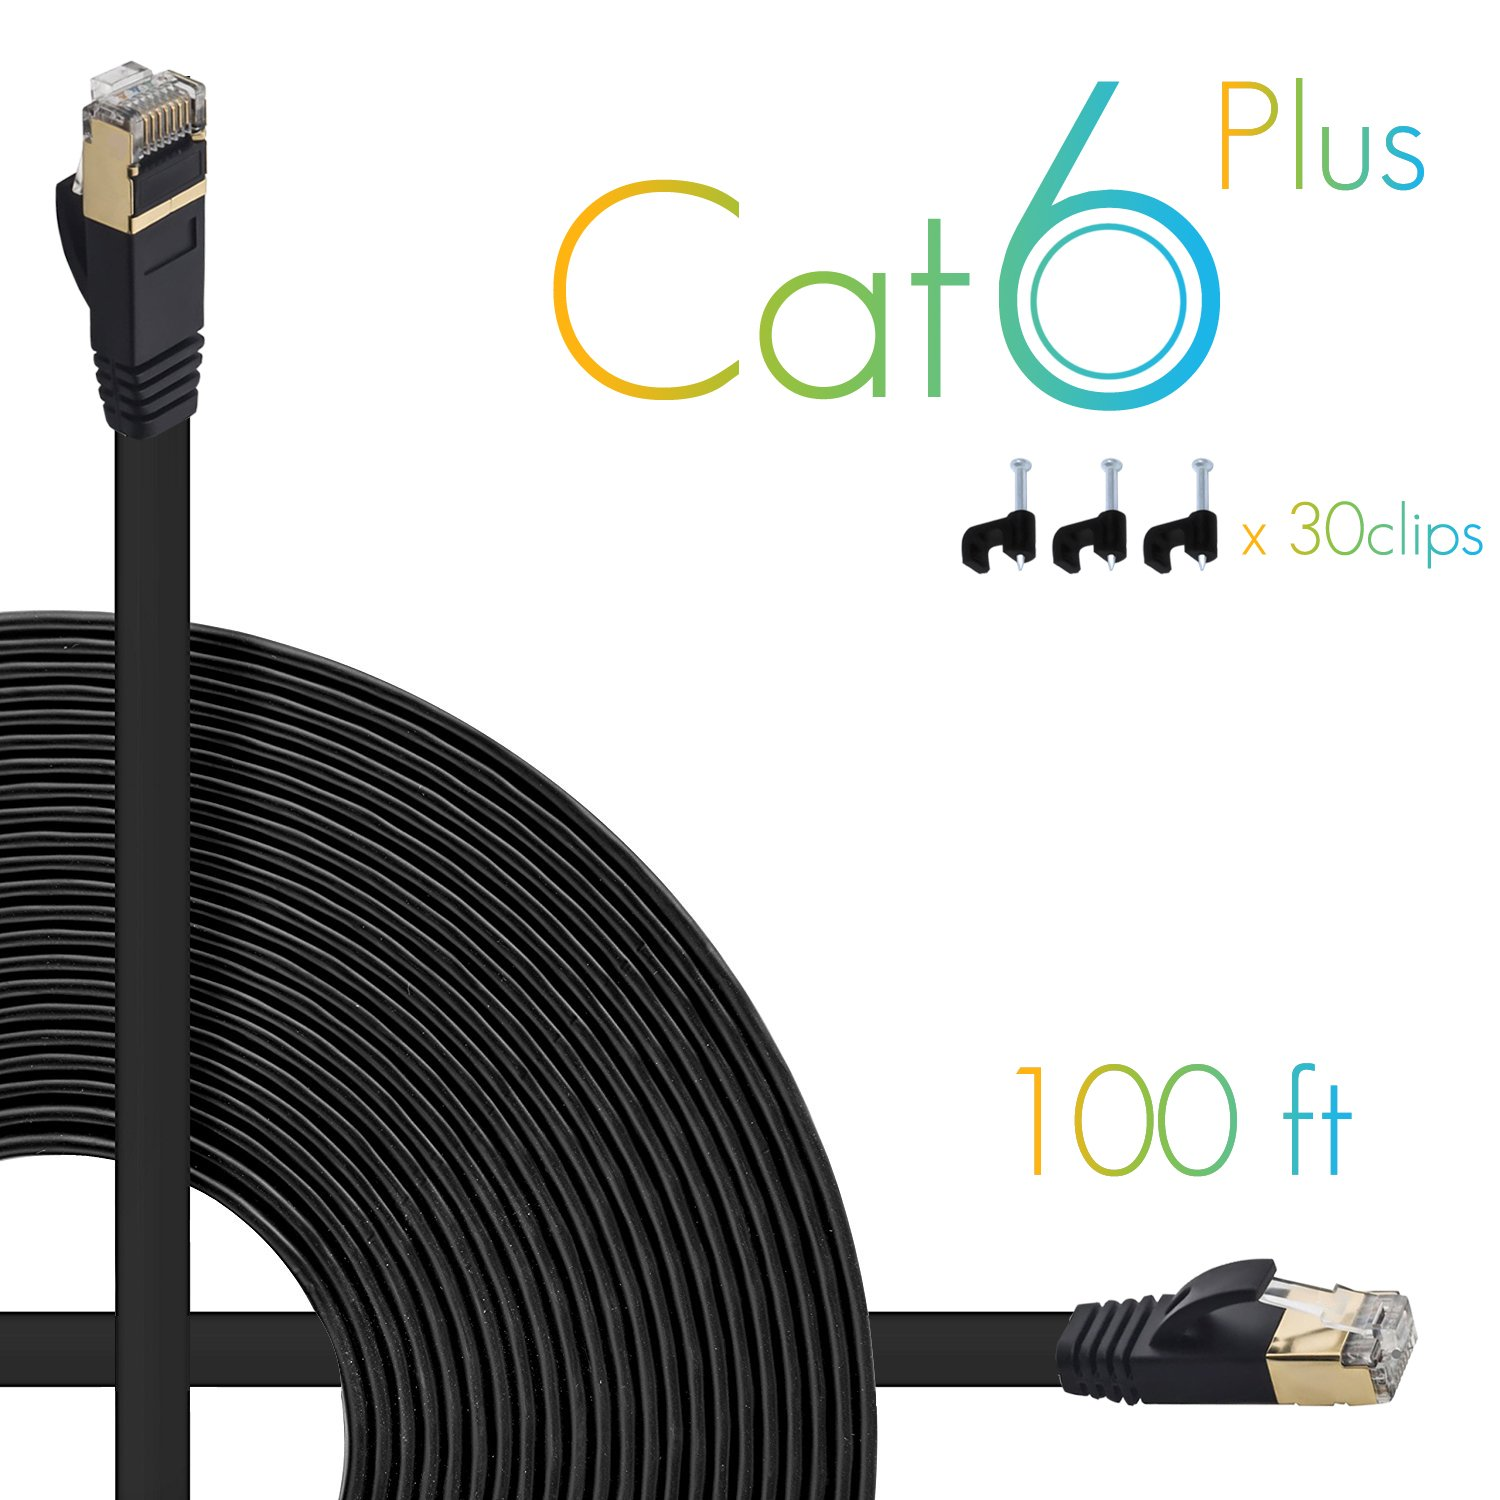 Computer Cable with Snagless Rj45 Connectors 30 feet White AOFORZ 10 Meters Ethernet Cable Cat6 Plus 30ft White Flat High Speed Internet Network Cable with Cable Clips